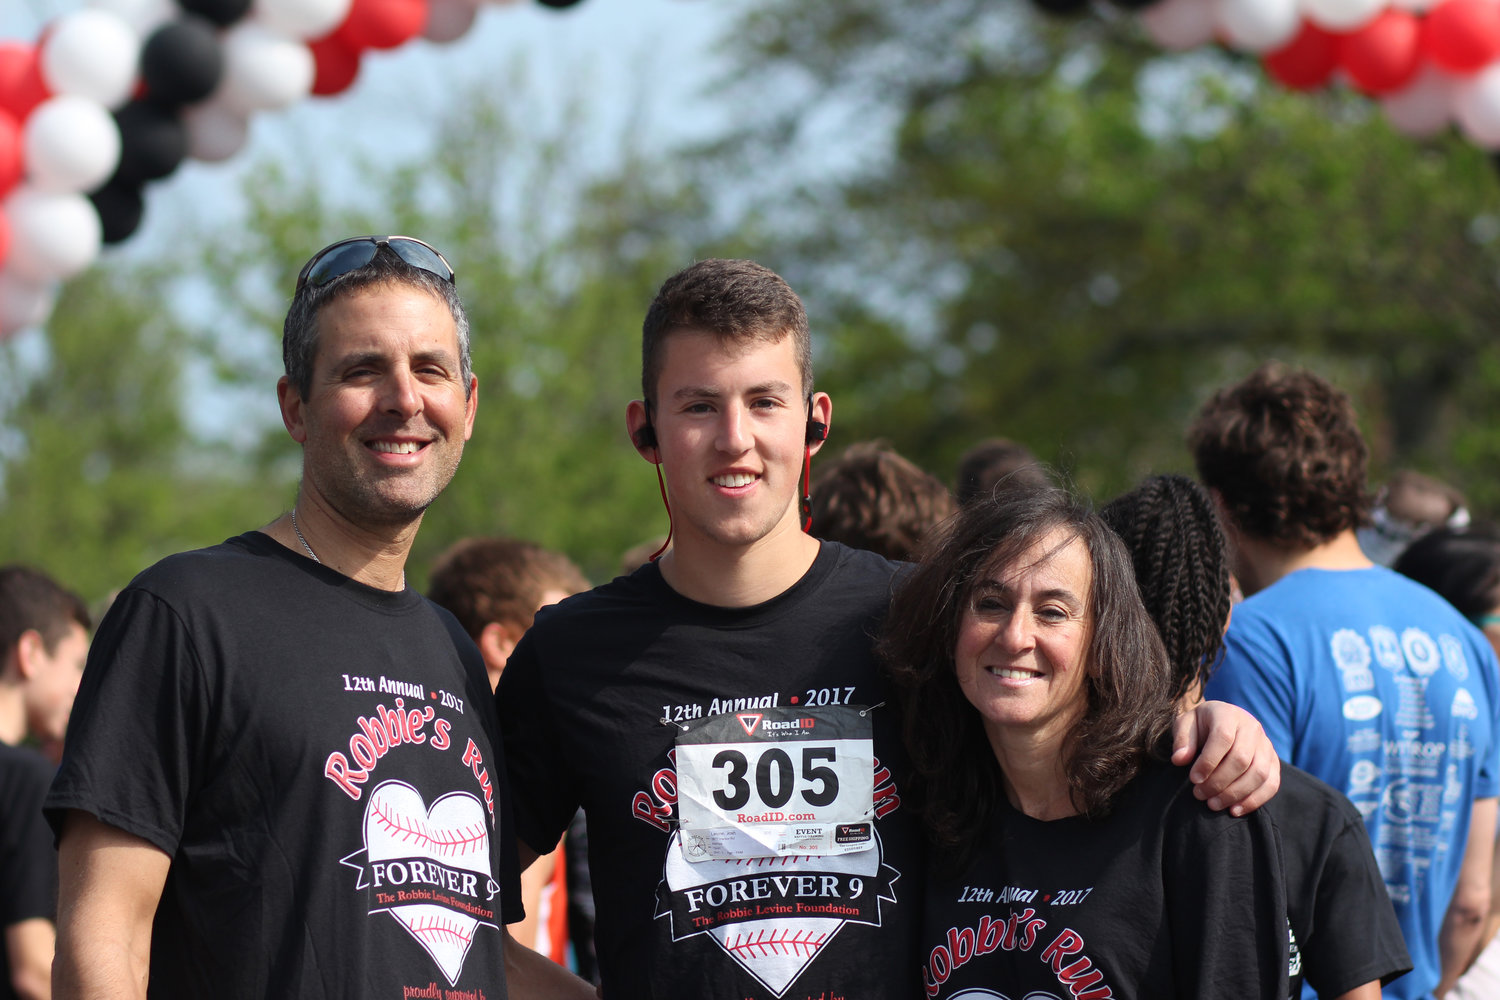 Jill Levine with her two sons, Craig, far left, and Joshua, at the 2017 Robbie's Run.